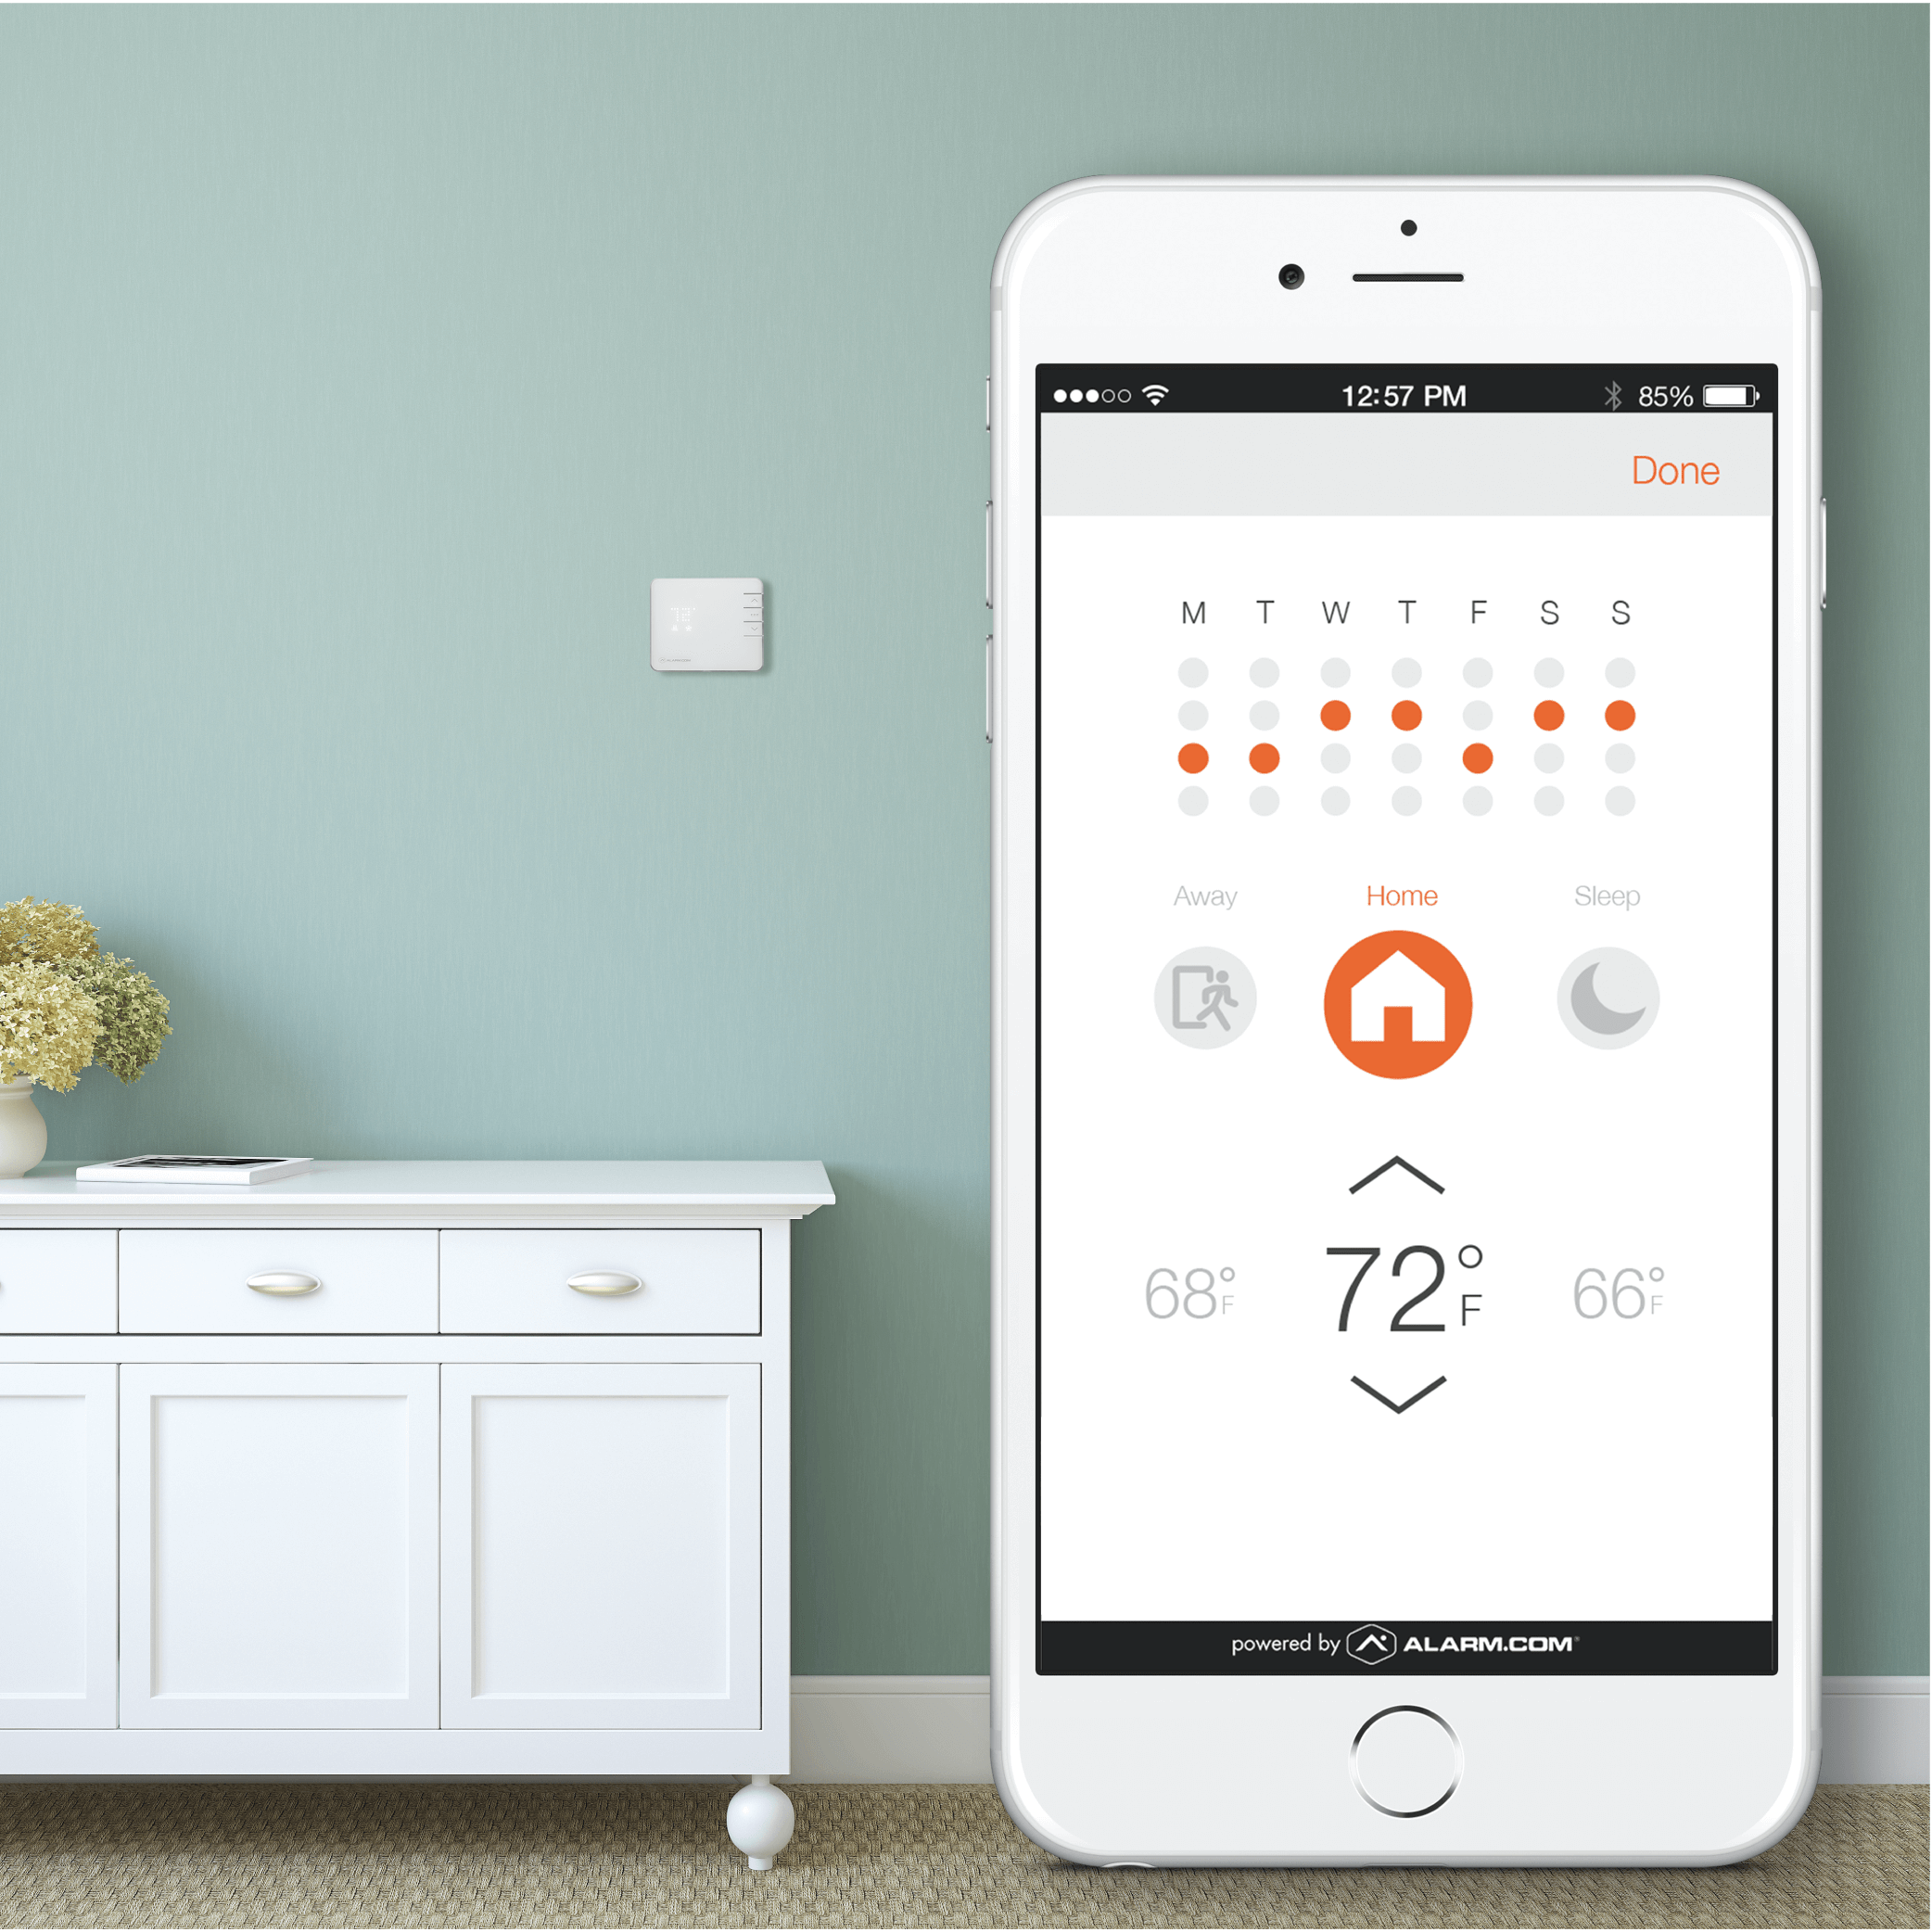 Save money with climate automation. - Program your home's climate to adjust for when you're not there, or set the window shades to react to the temperature outside. Plus, our system automatically compensates for unexpected activity – changing the temperature to keep costs down when doors or windows are left open accidentally.